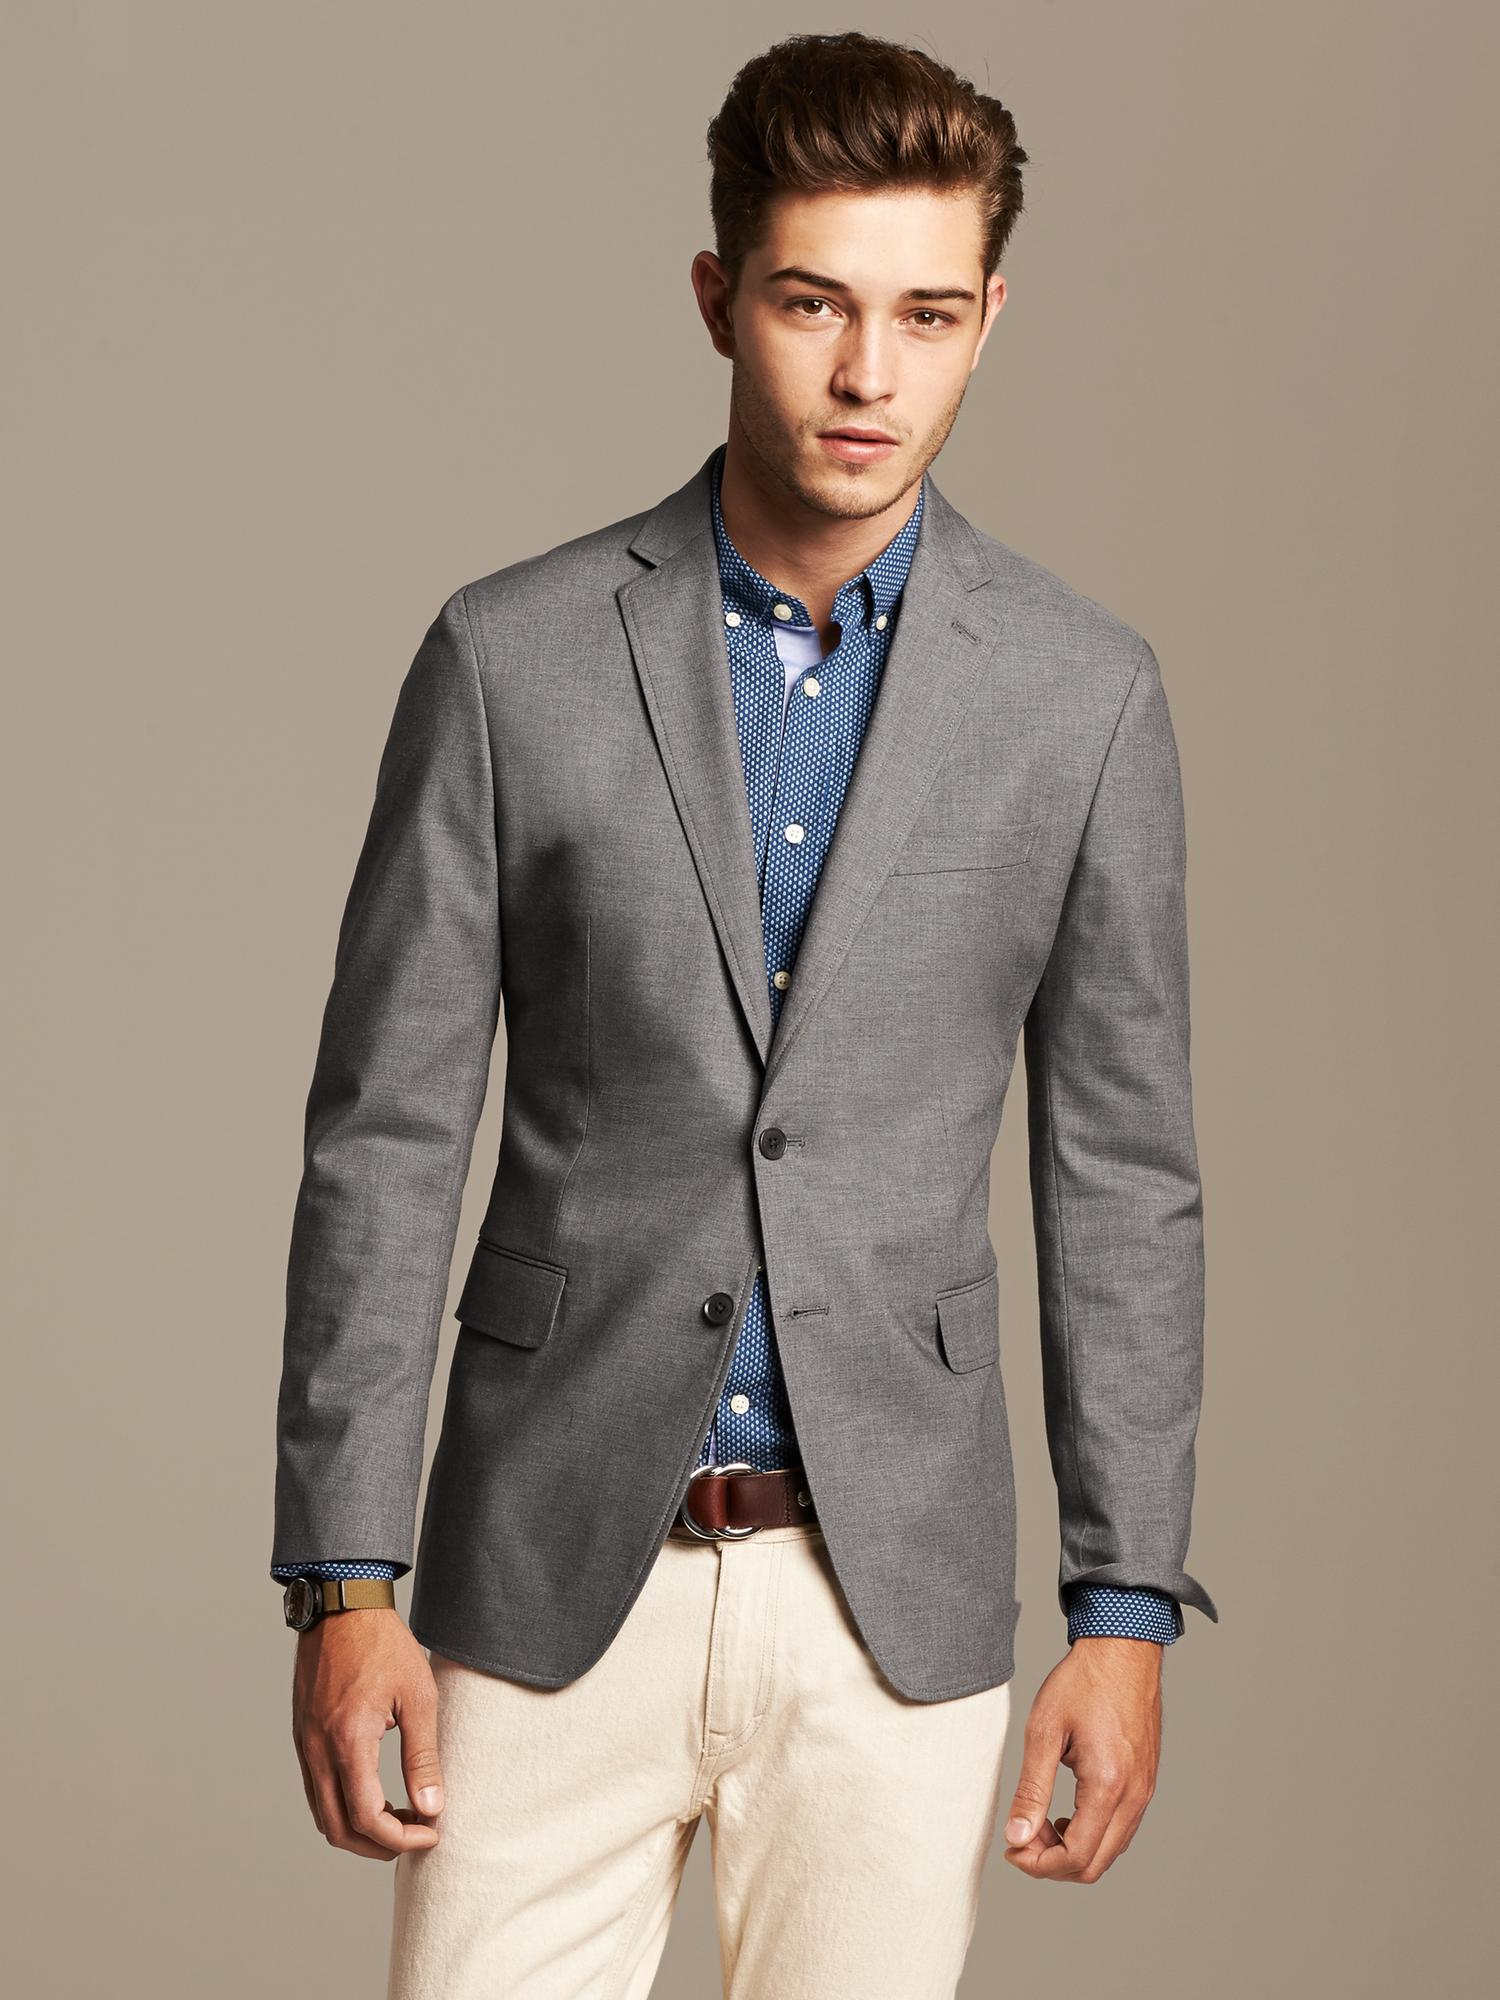 Tailored Blazers for Men The tailored blazers from the Tommy Hilfiger Tailored collection integrate a sharp, sophisticated style into any man's wardrobe. Dinner jackets get a modern overhaul in linen, cotton or virgin wool in a variety of colors and styles.